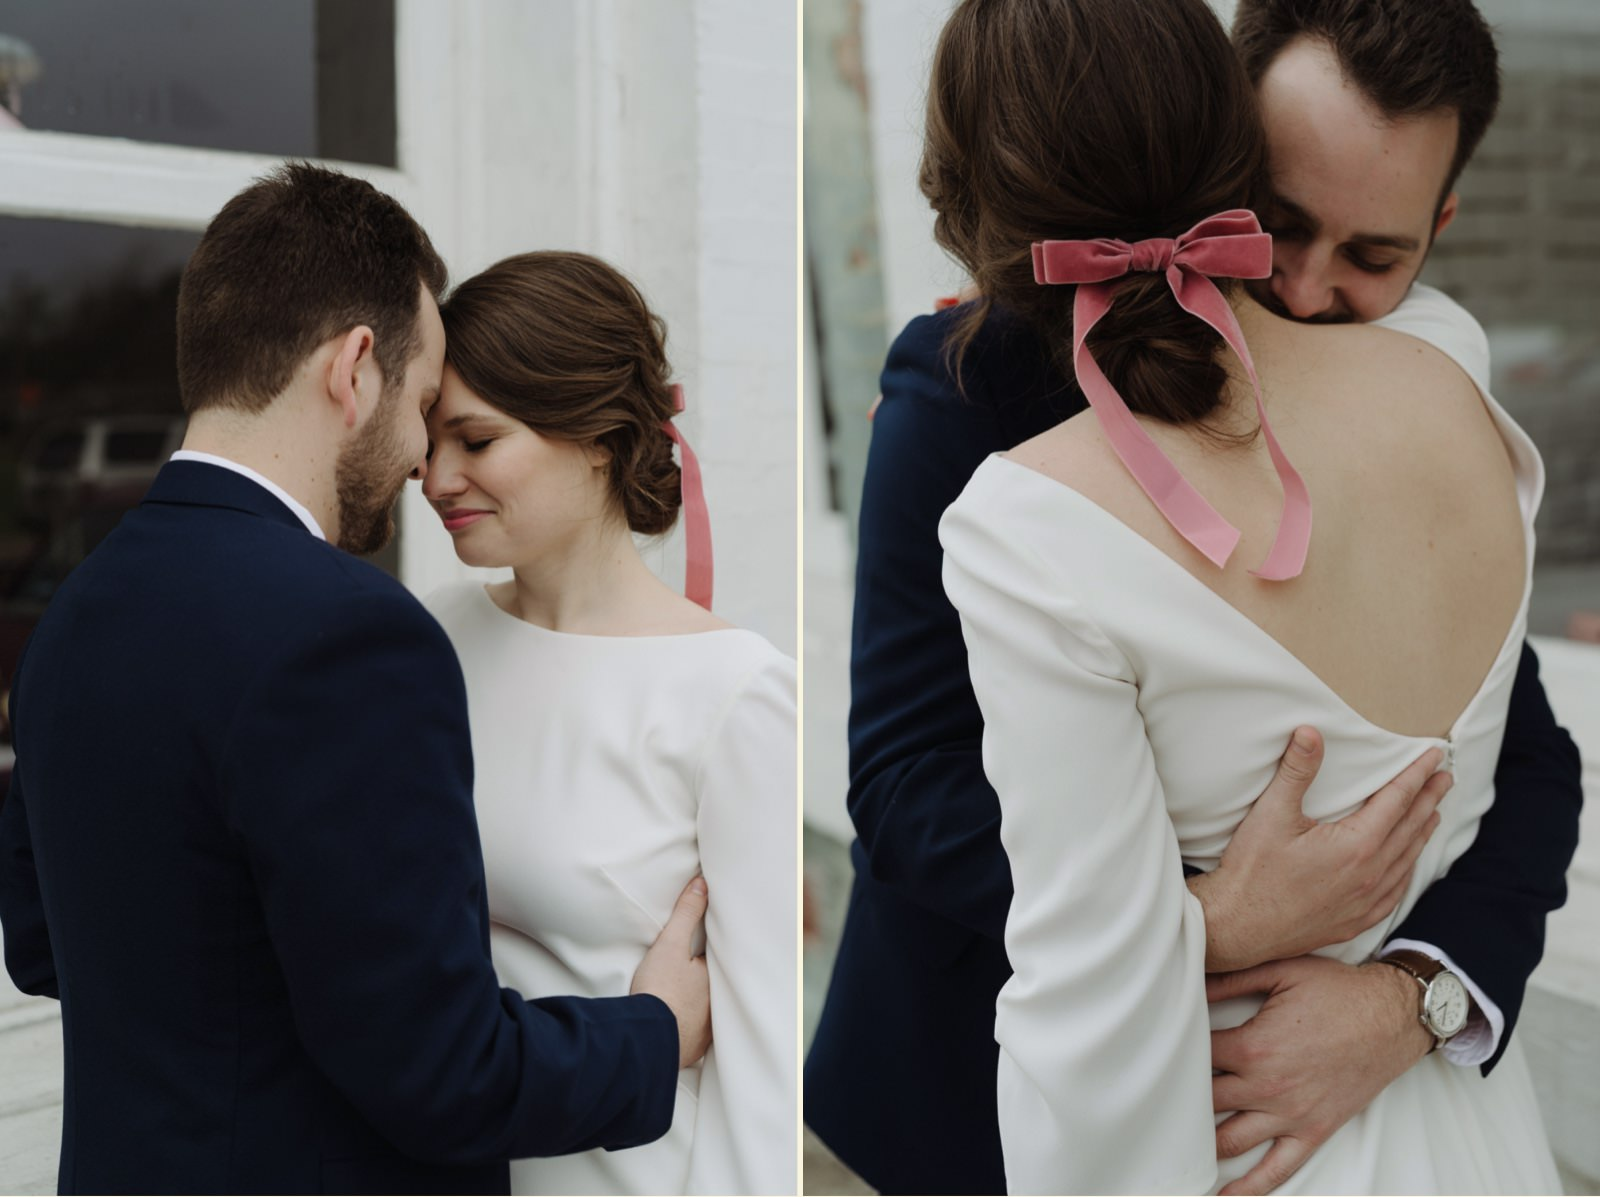 Bridal style with pink tied ribbon in an updo